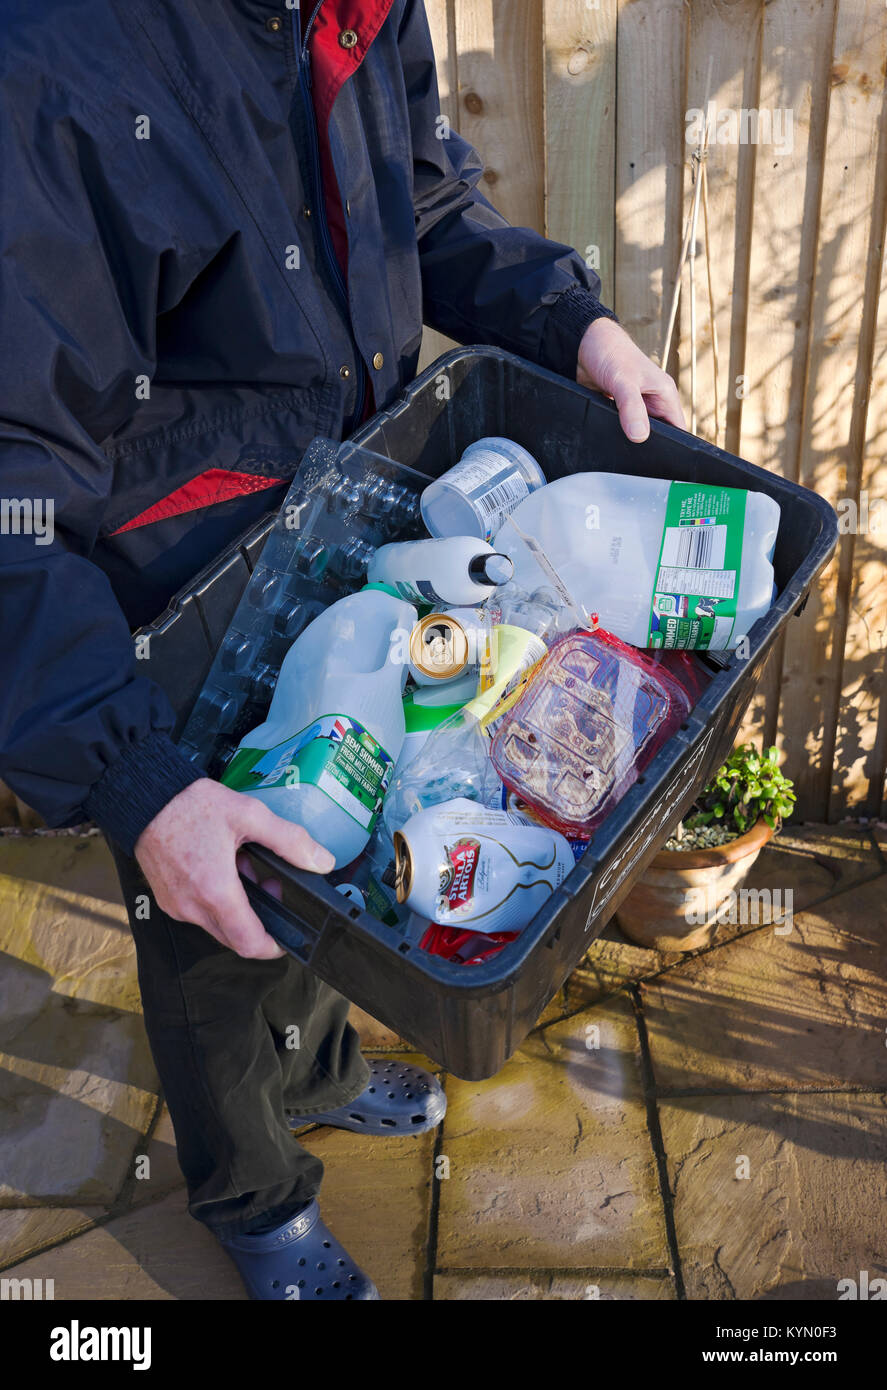 Man putting out plastic and tins recycling box for collection England UK United Kingdom GB Great Britain Stock Photo